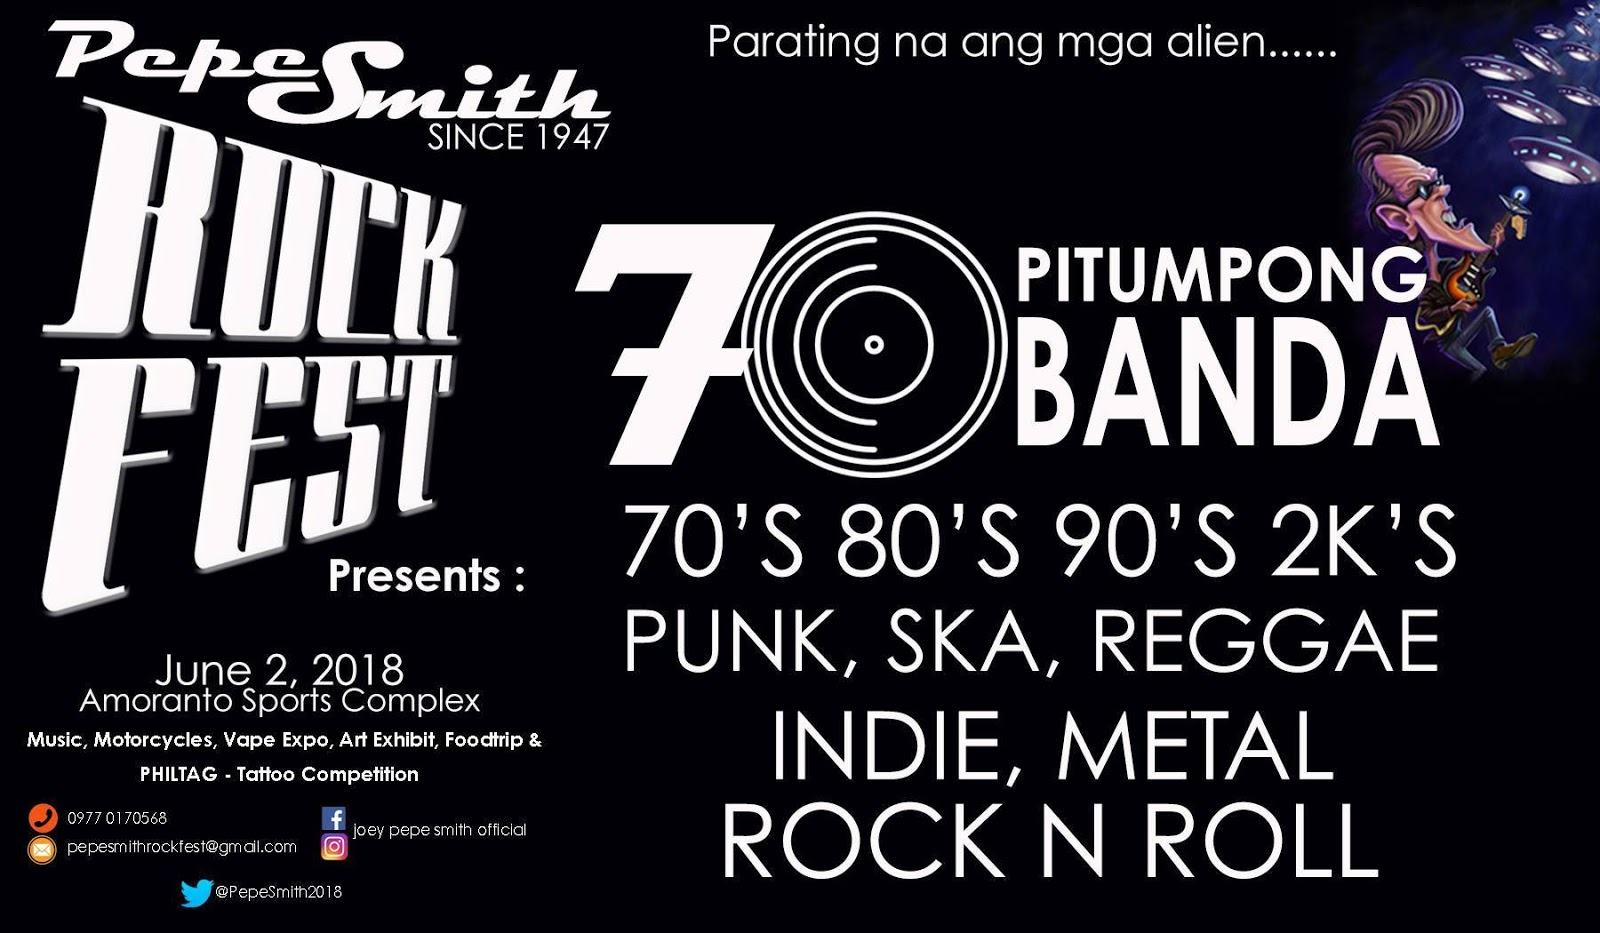 Pepe smiths road manager pire pepe smith rockfest ticket prices fandeluxe Choice Image